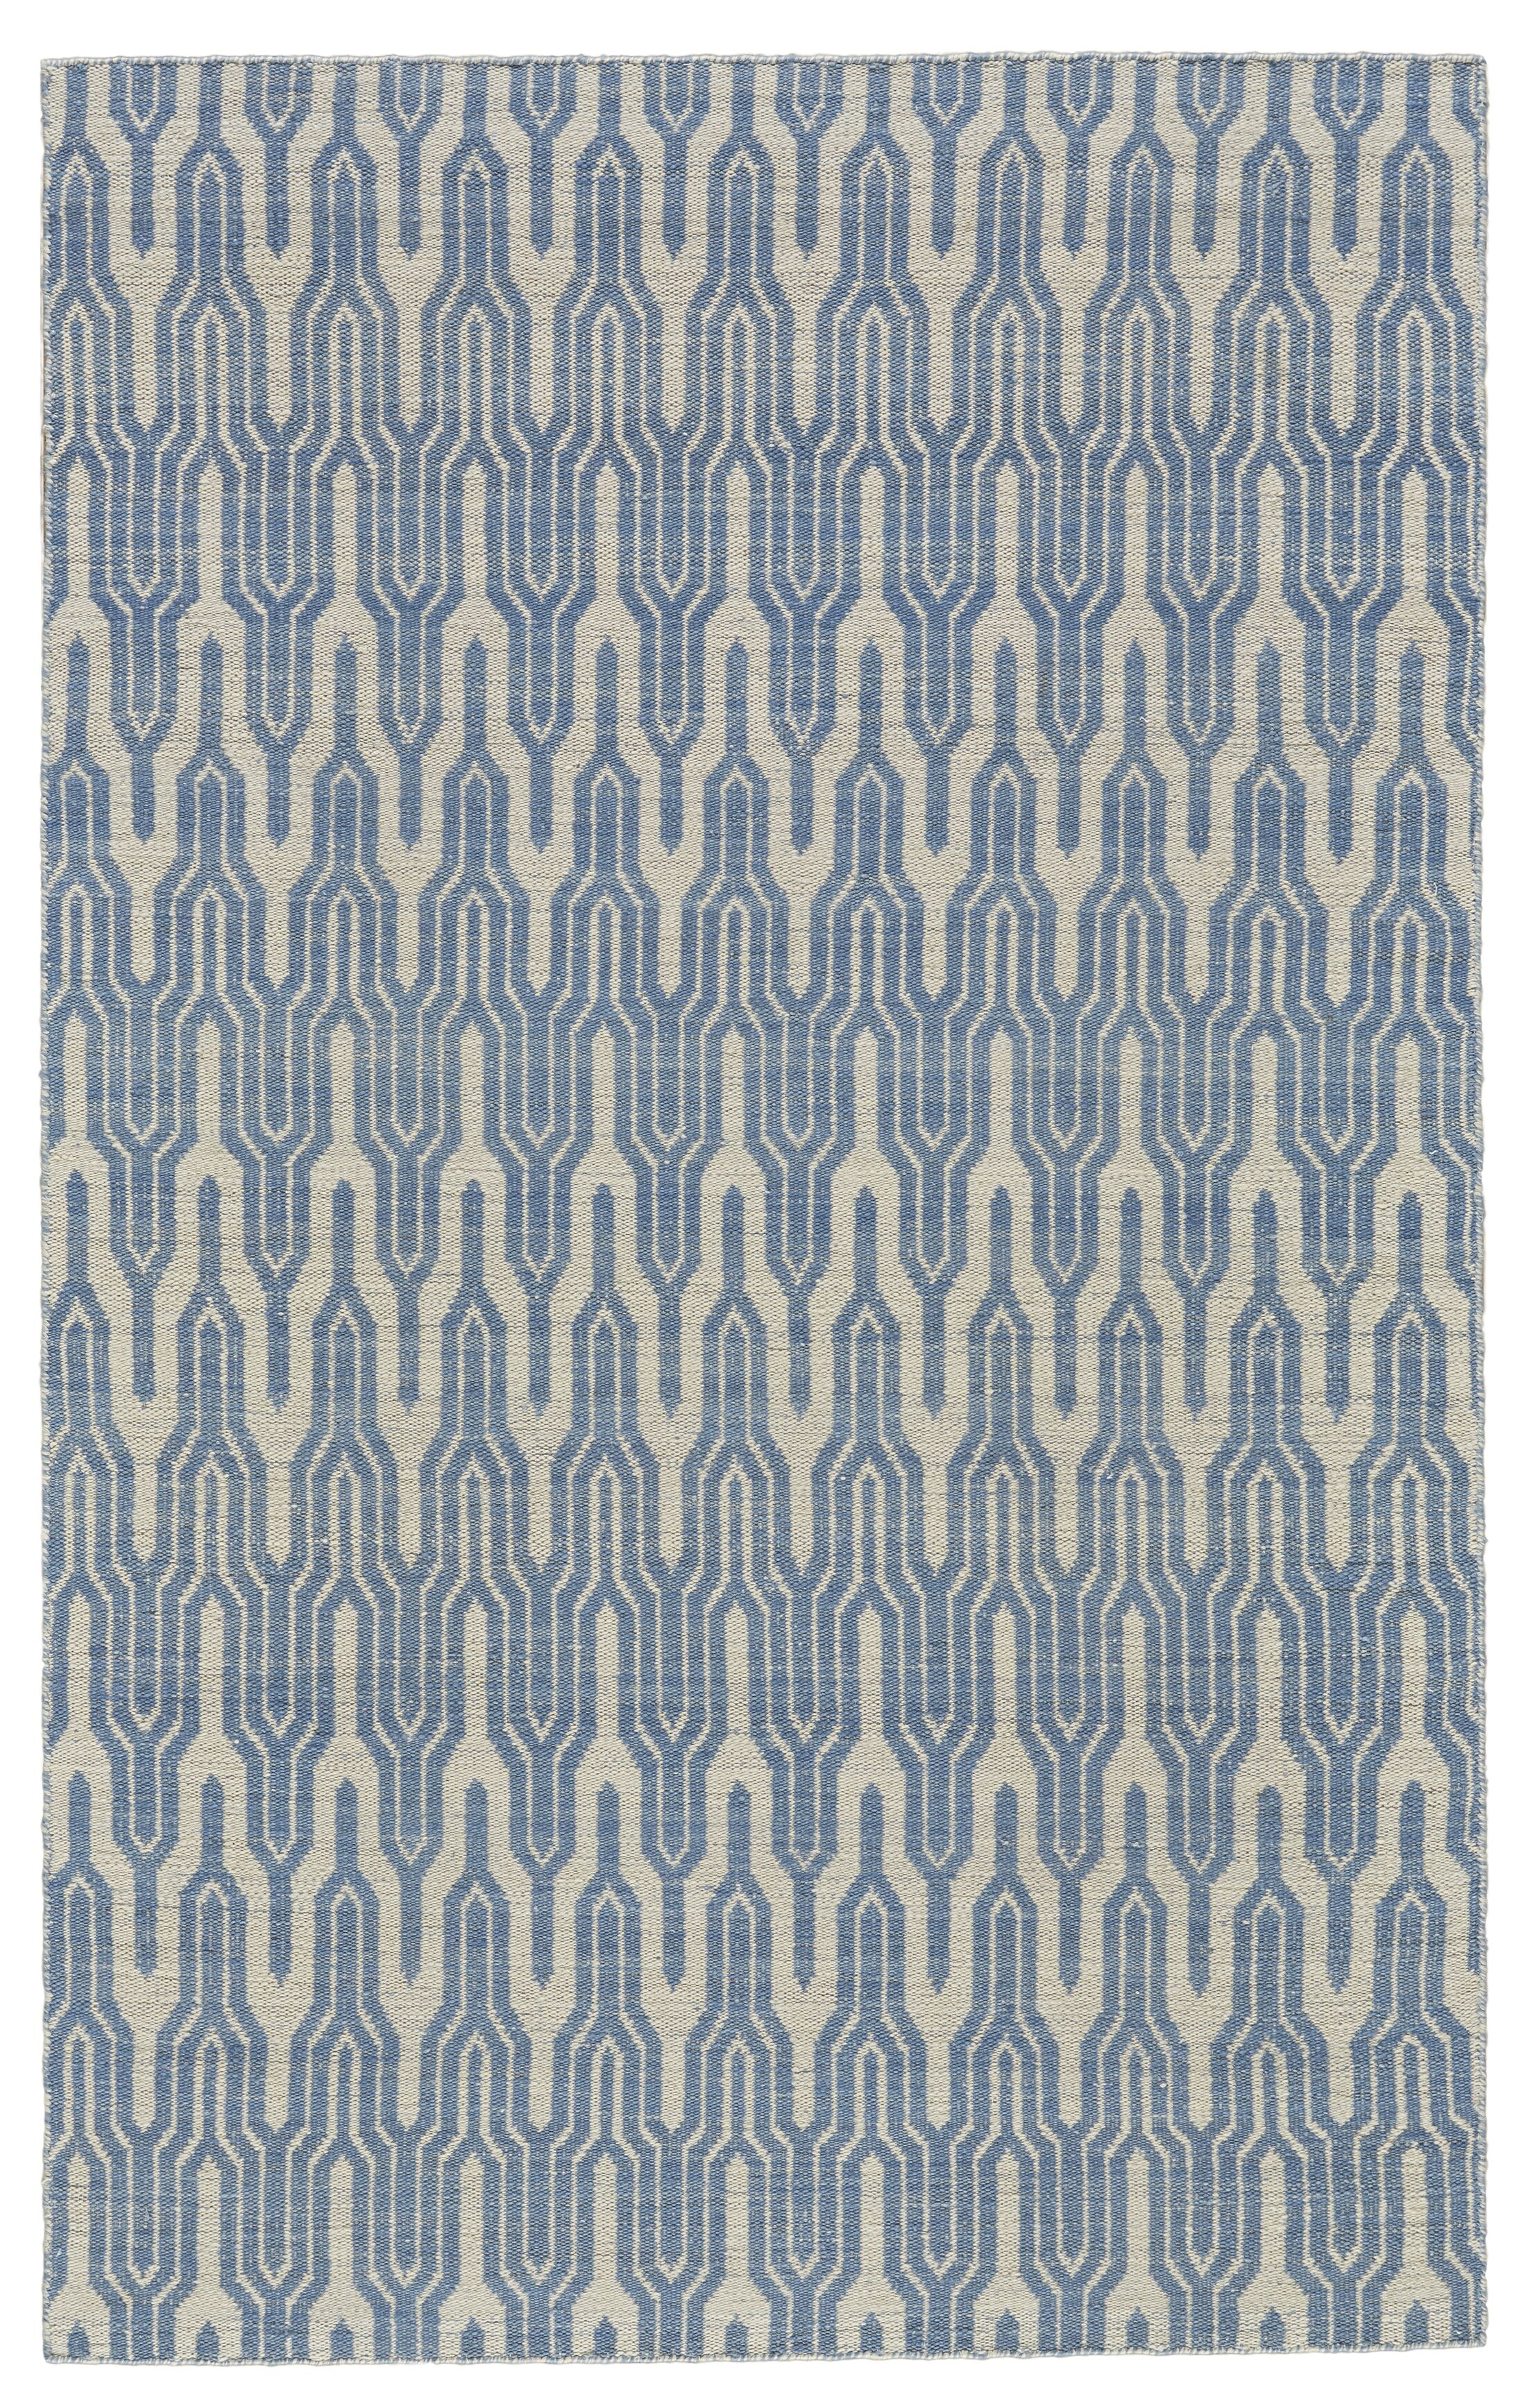 Hallock Hand-Loomed Light Blue Area Rug Rug Size: Rectangle 8' x 10'